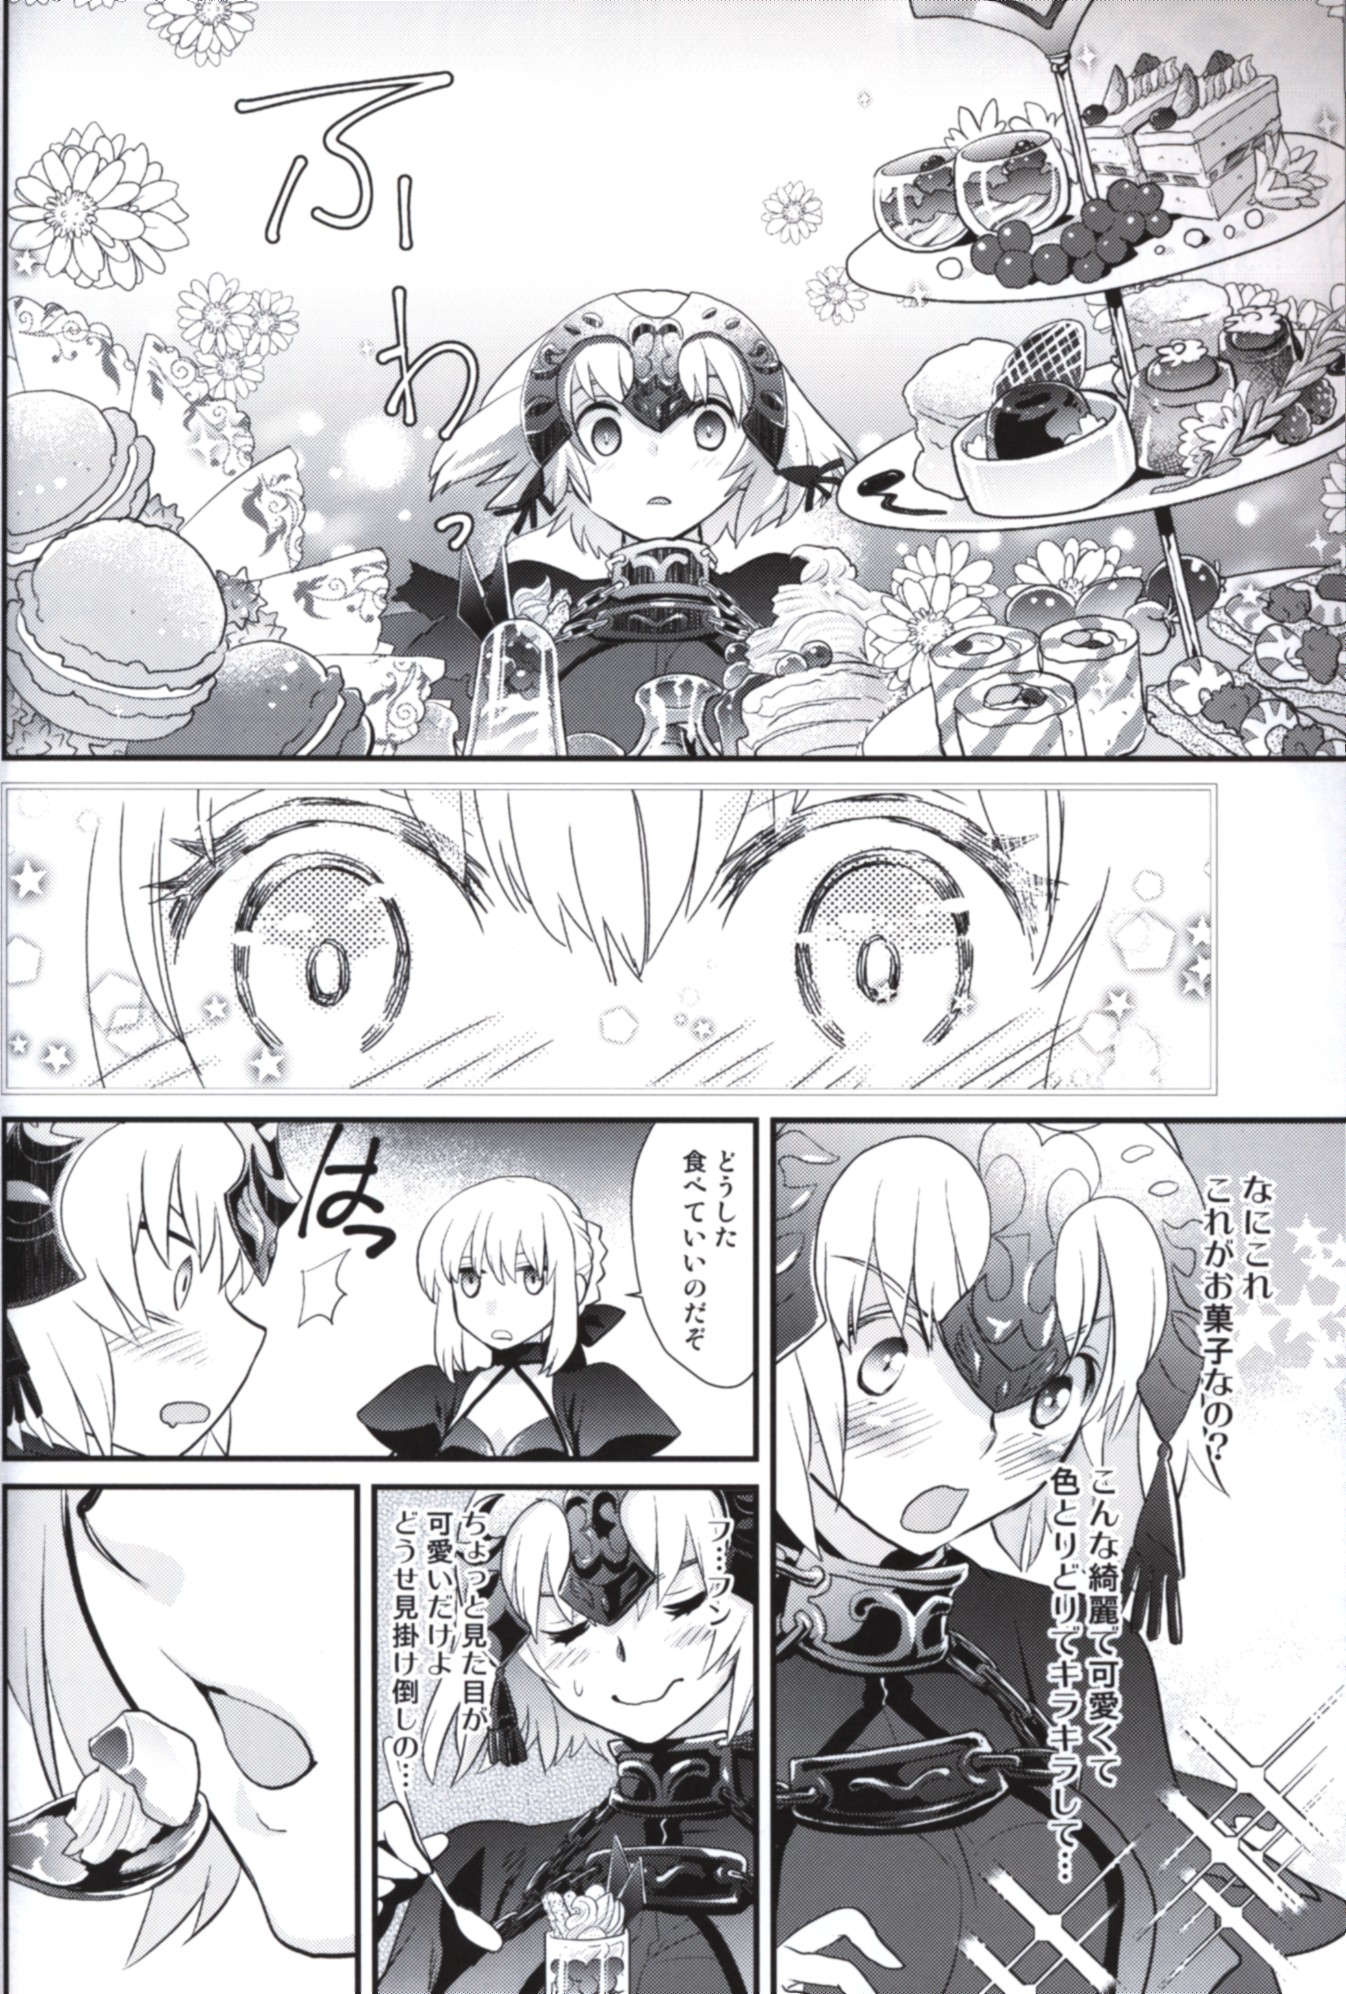 Doujinshi - Fate/Grand Order / Saber Alter & Jeanne d'Arc (Alter) (Wオルタさんちの食事情) / Higenashi